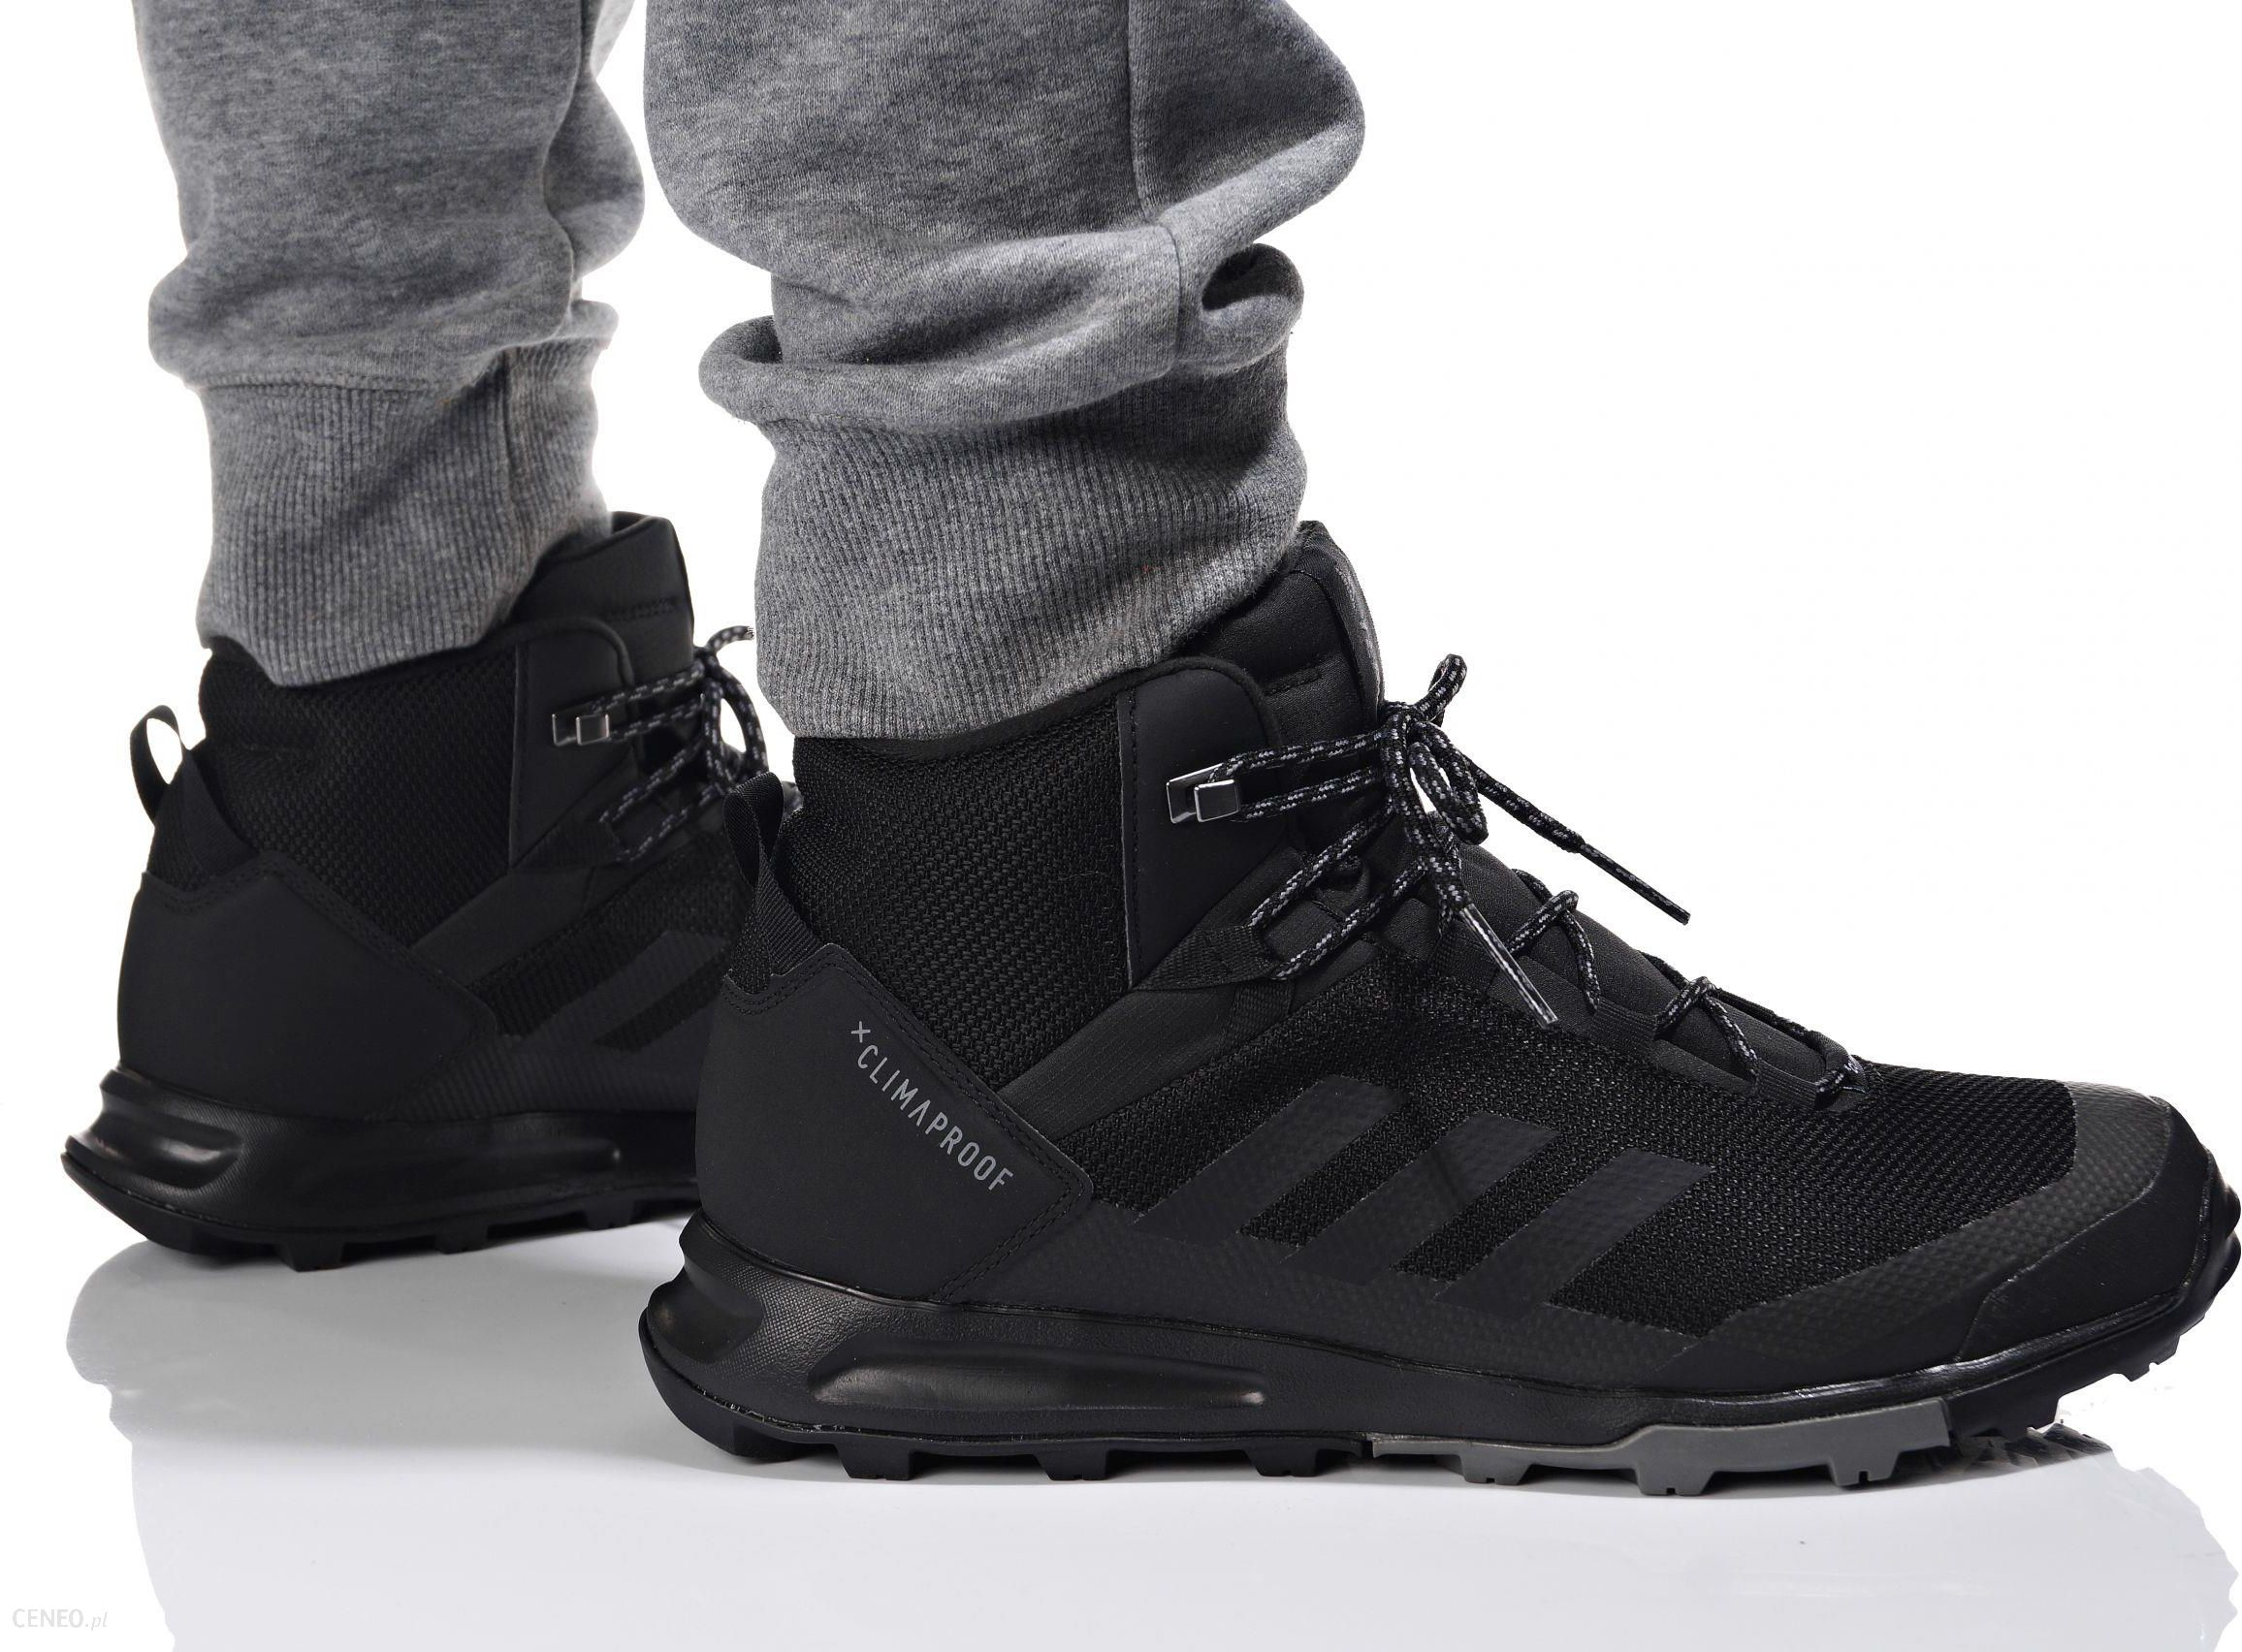 lowest price online for sale running shoes BUTY ADIDAS TERREX TIVID MID CP S80935